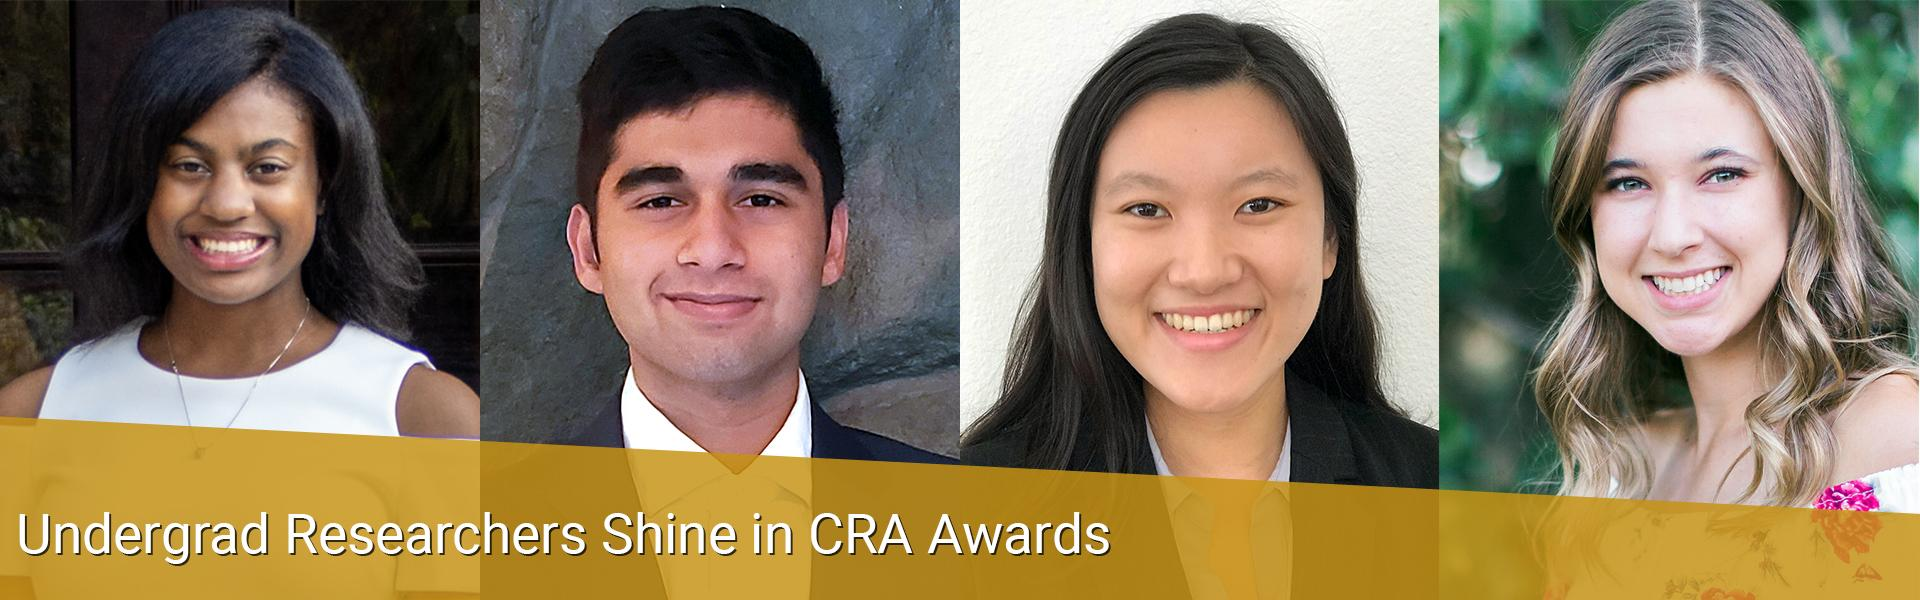 Undergrad Researchers Shine in CRA Awards